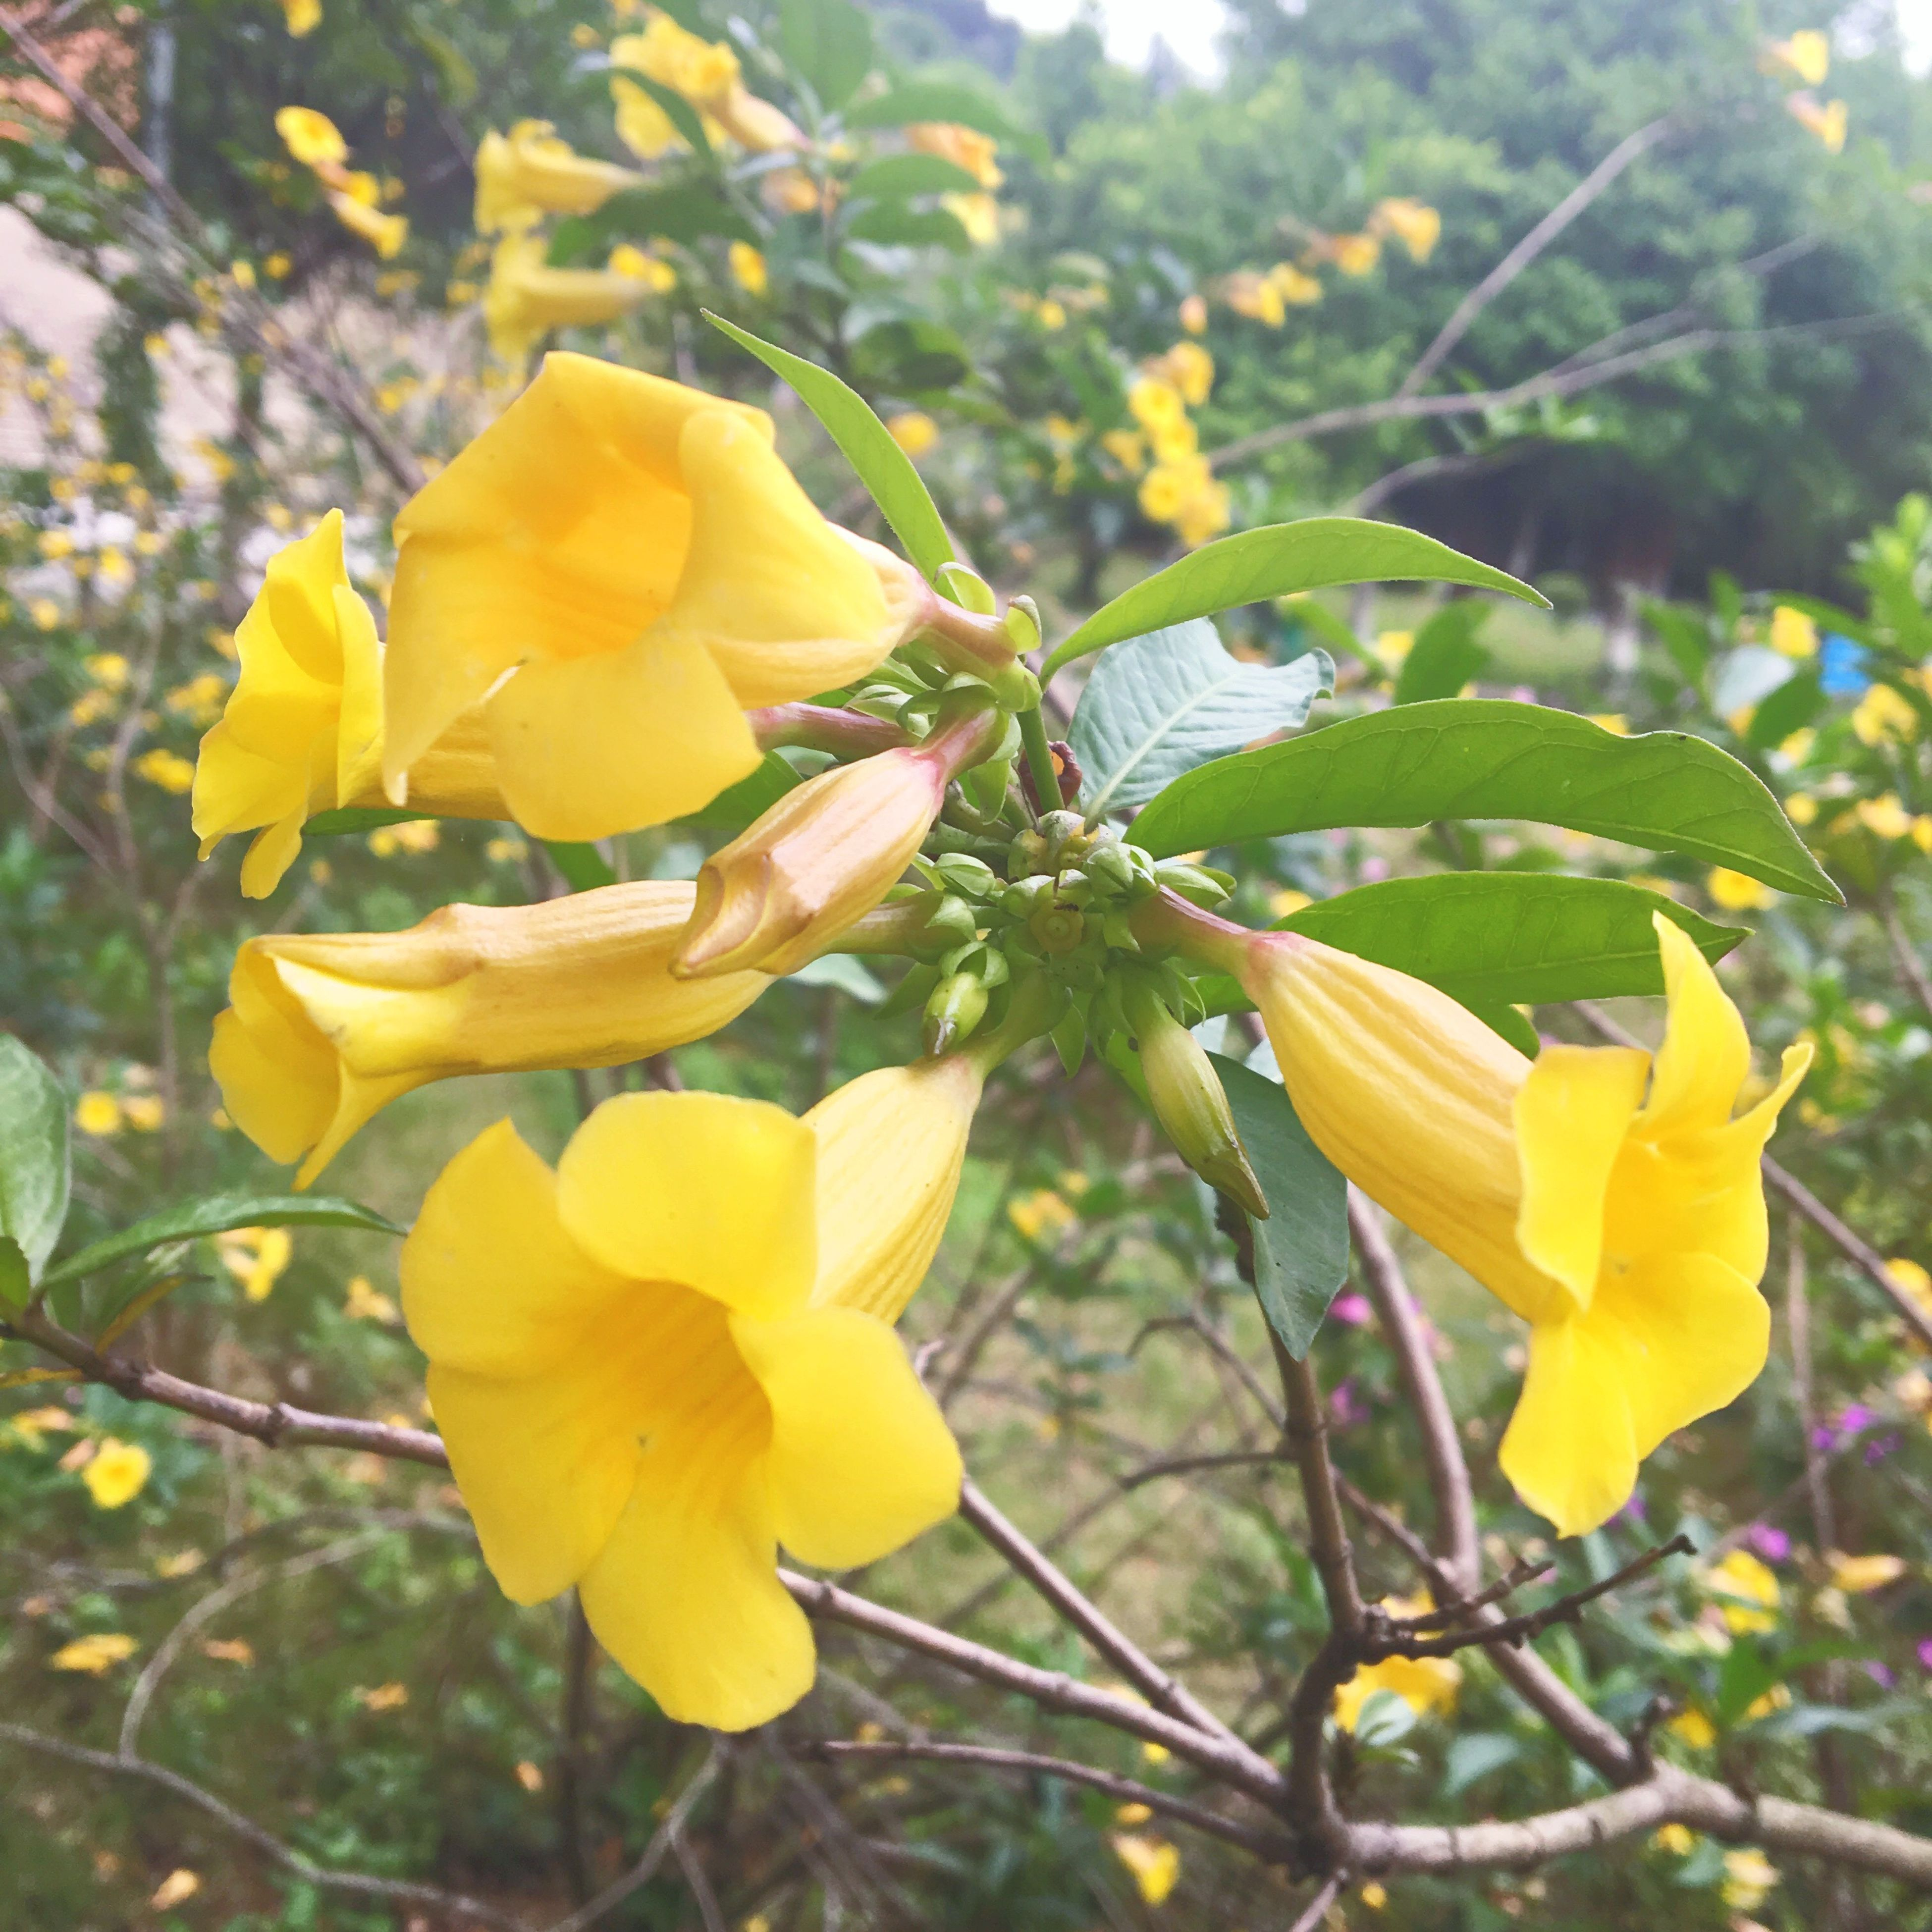 yellow, nature, growth, plant, flower, beauty in nature, close-up, petal, outdoors, blooming, freshness, no people, flower head, fragility, day